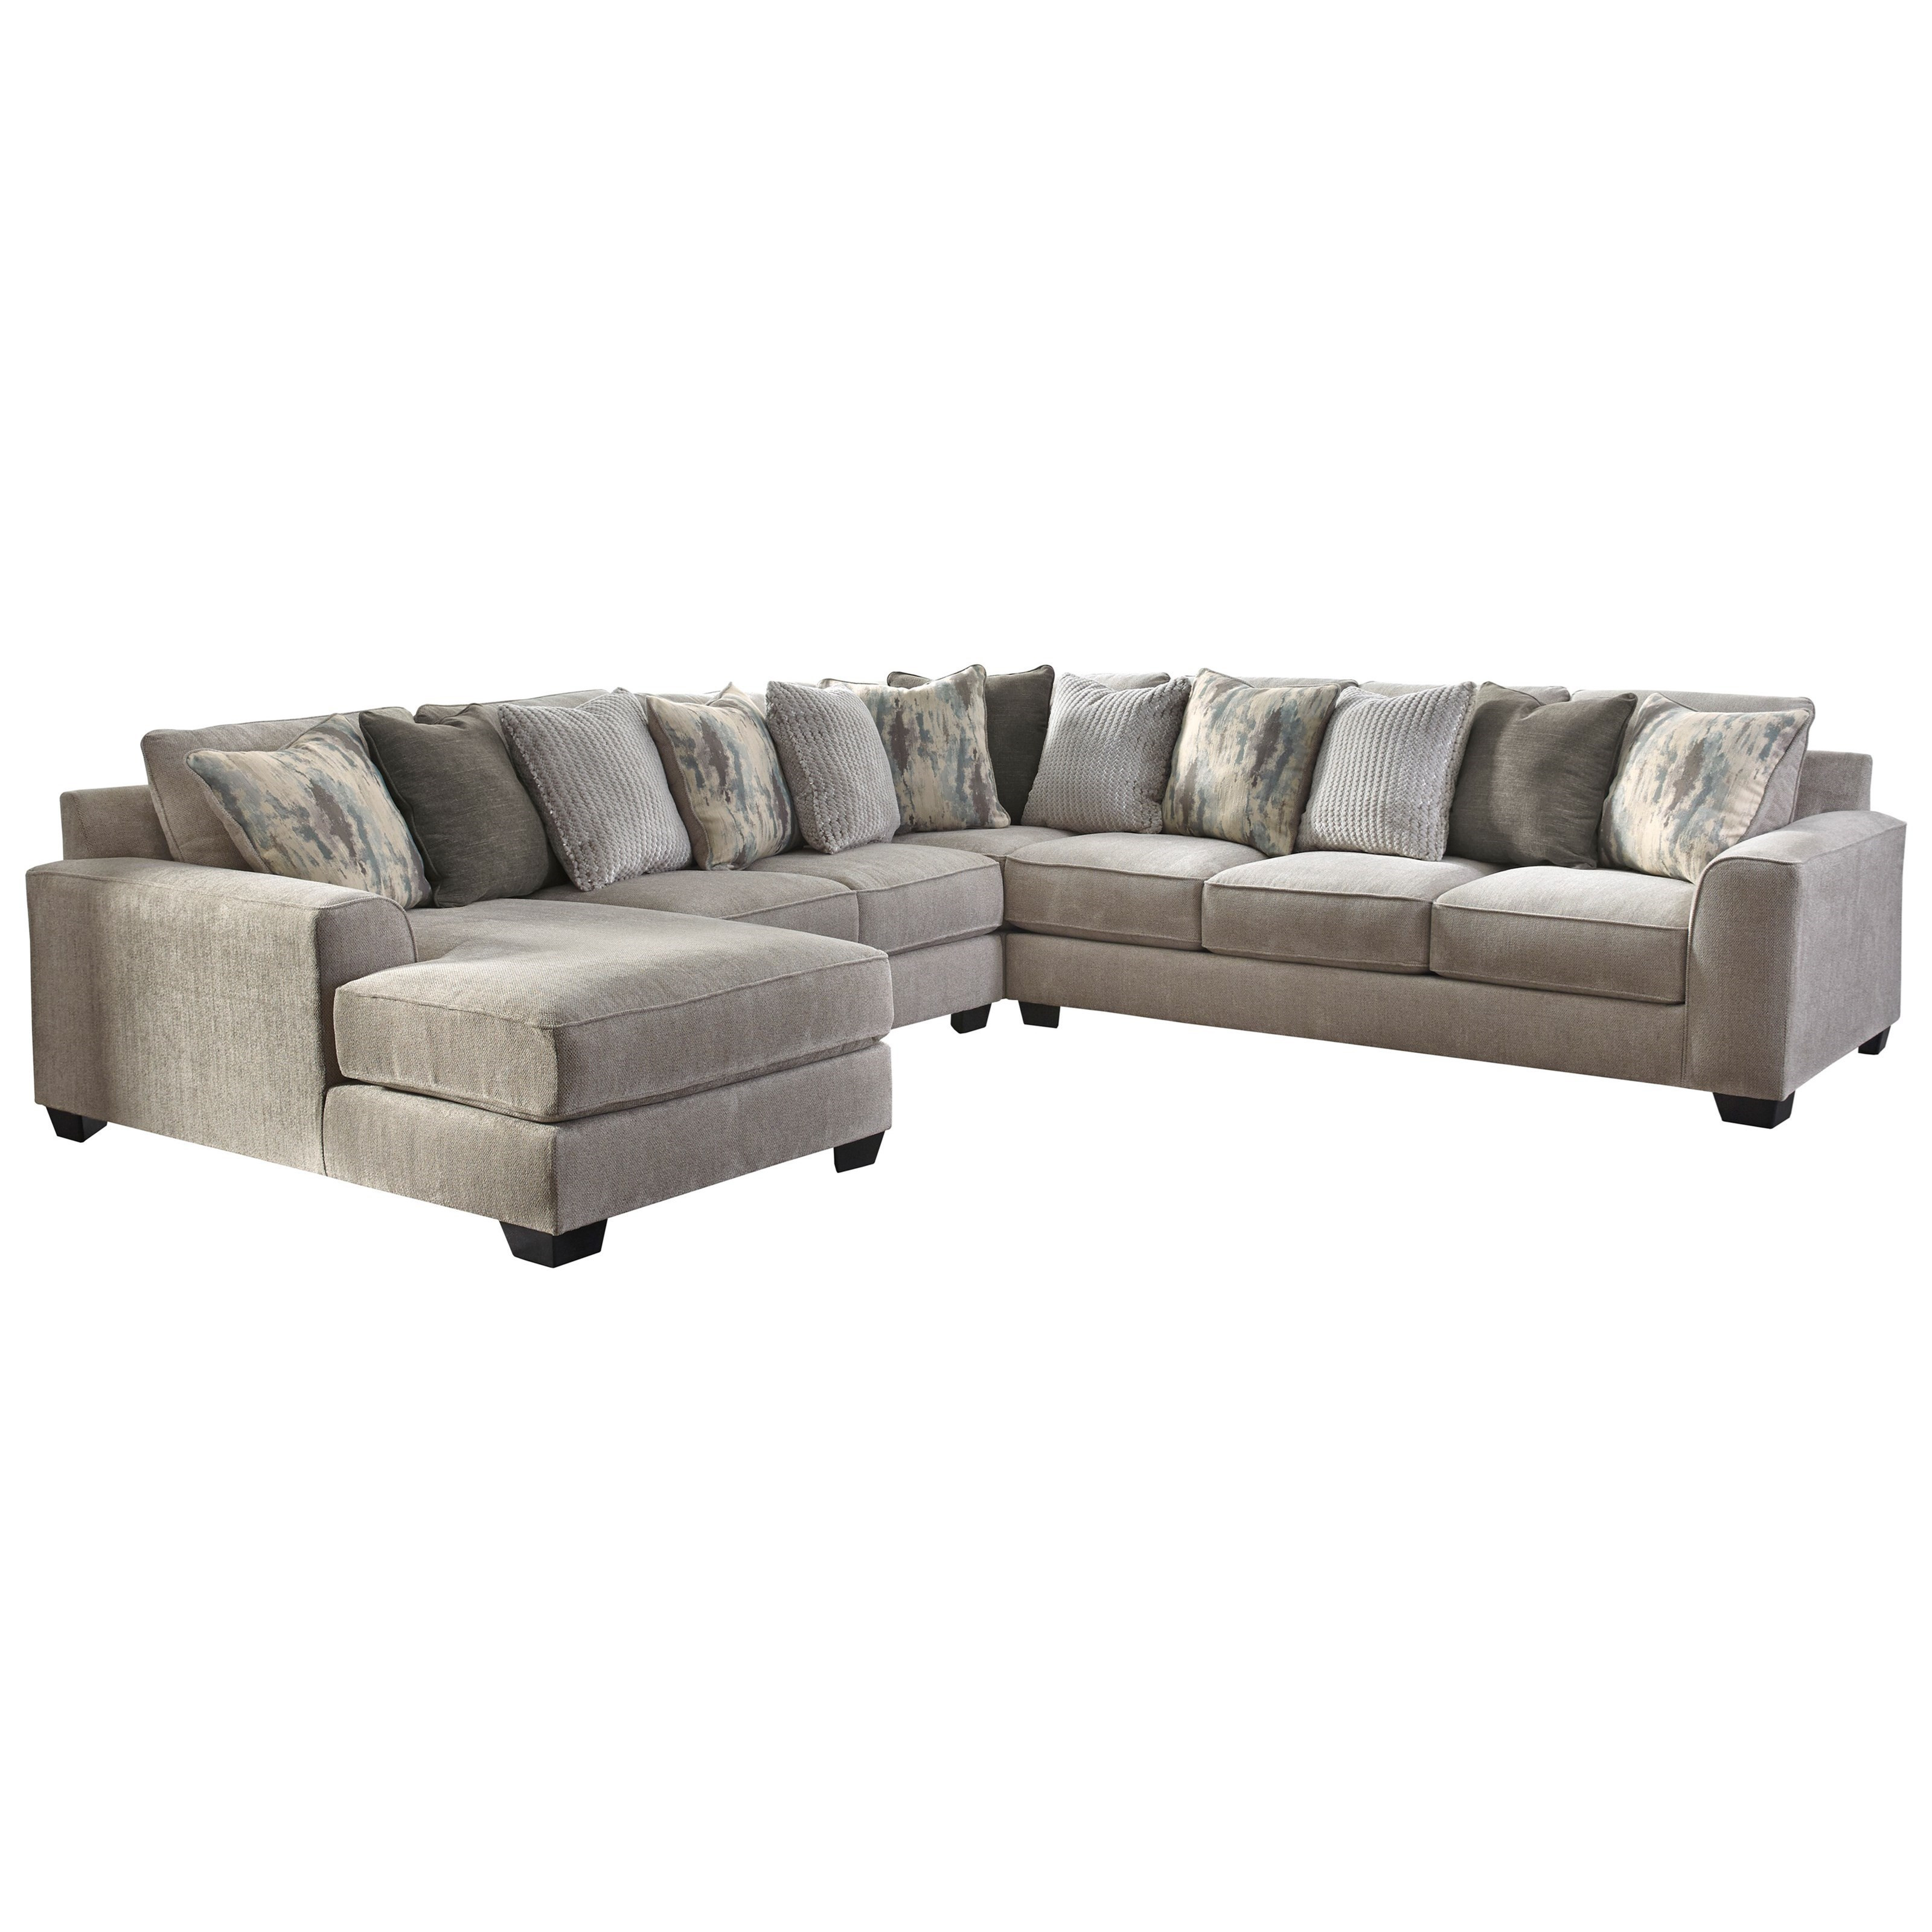 Benchcraft By Ashley Ardsley Contemporary 4 Piece Sectional With Left Chaise Royal Furniture Sectional Sofas